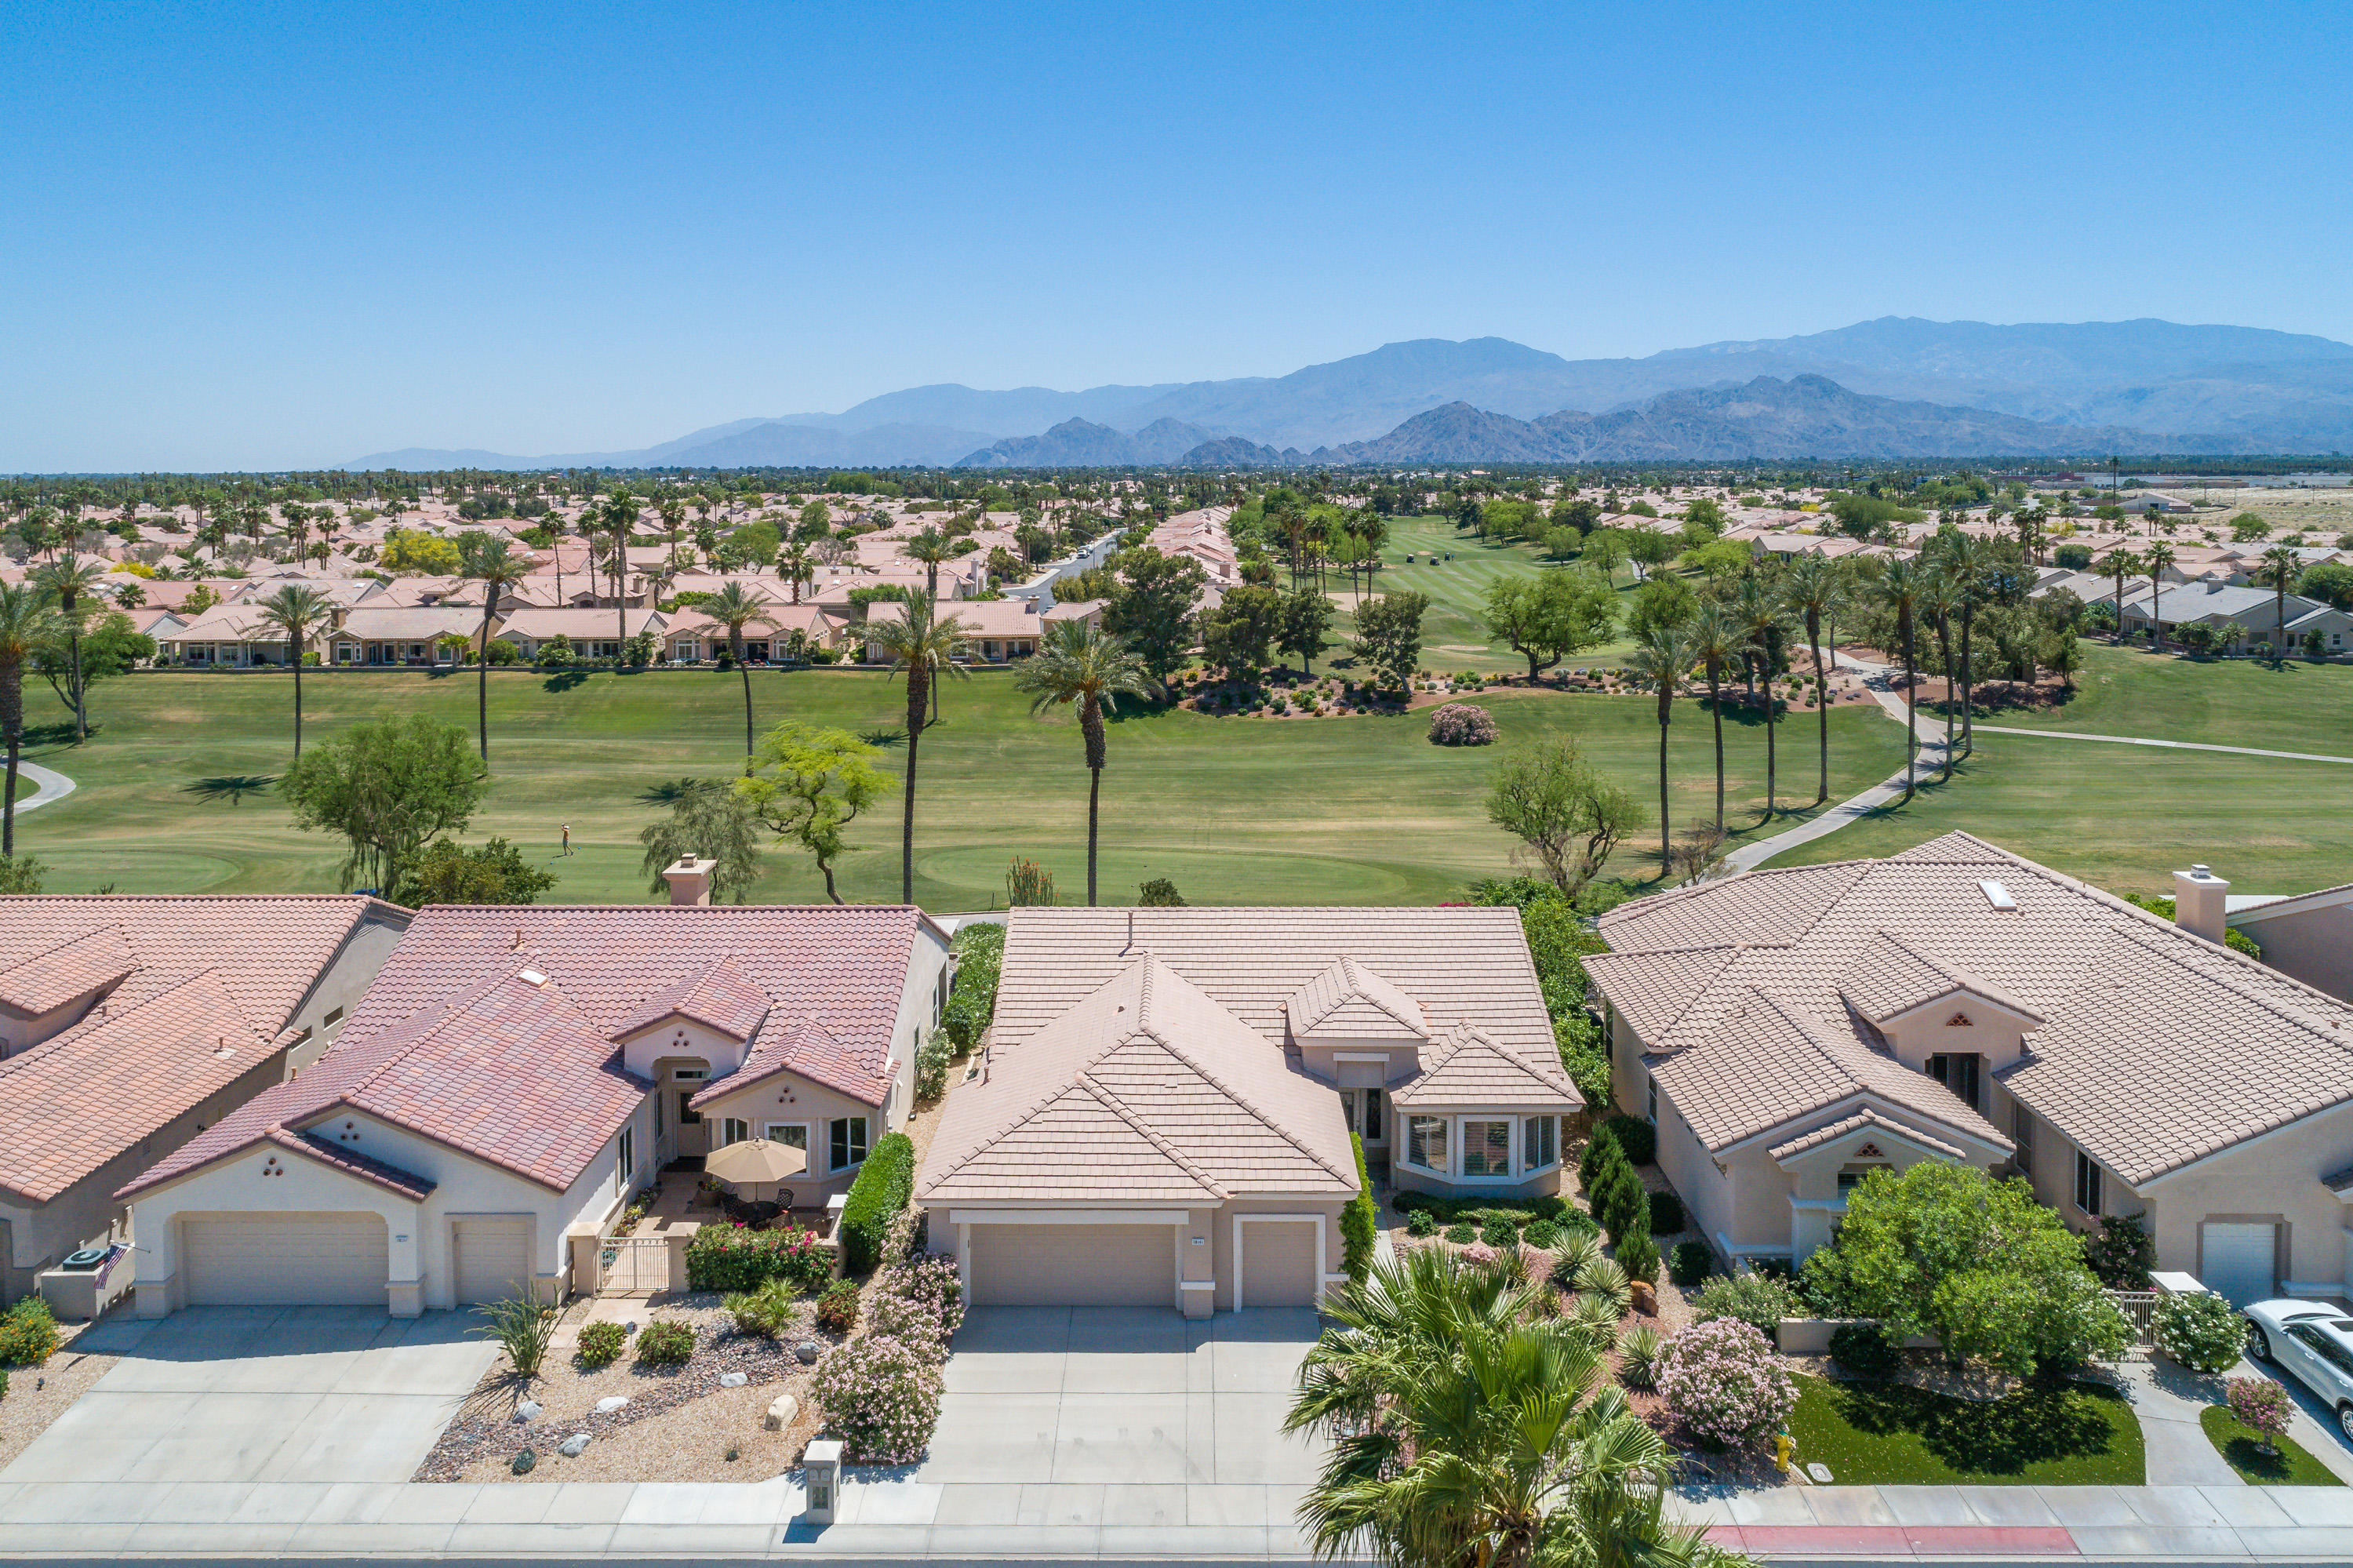 Photo of 78141 Suncliff Circle, Palm Desert, CA 92211